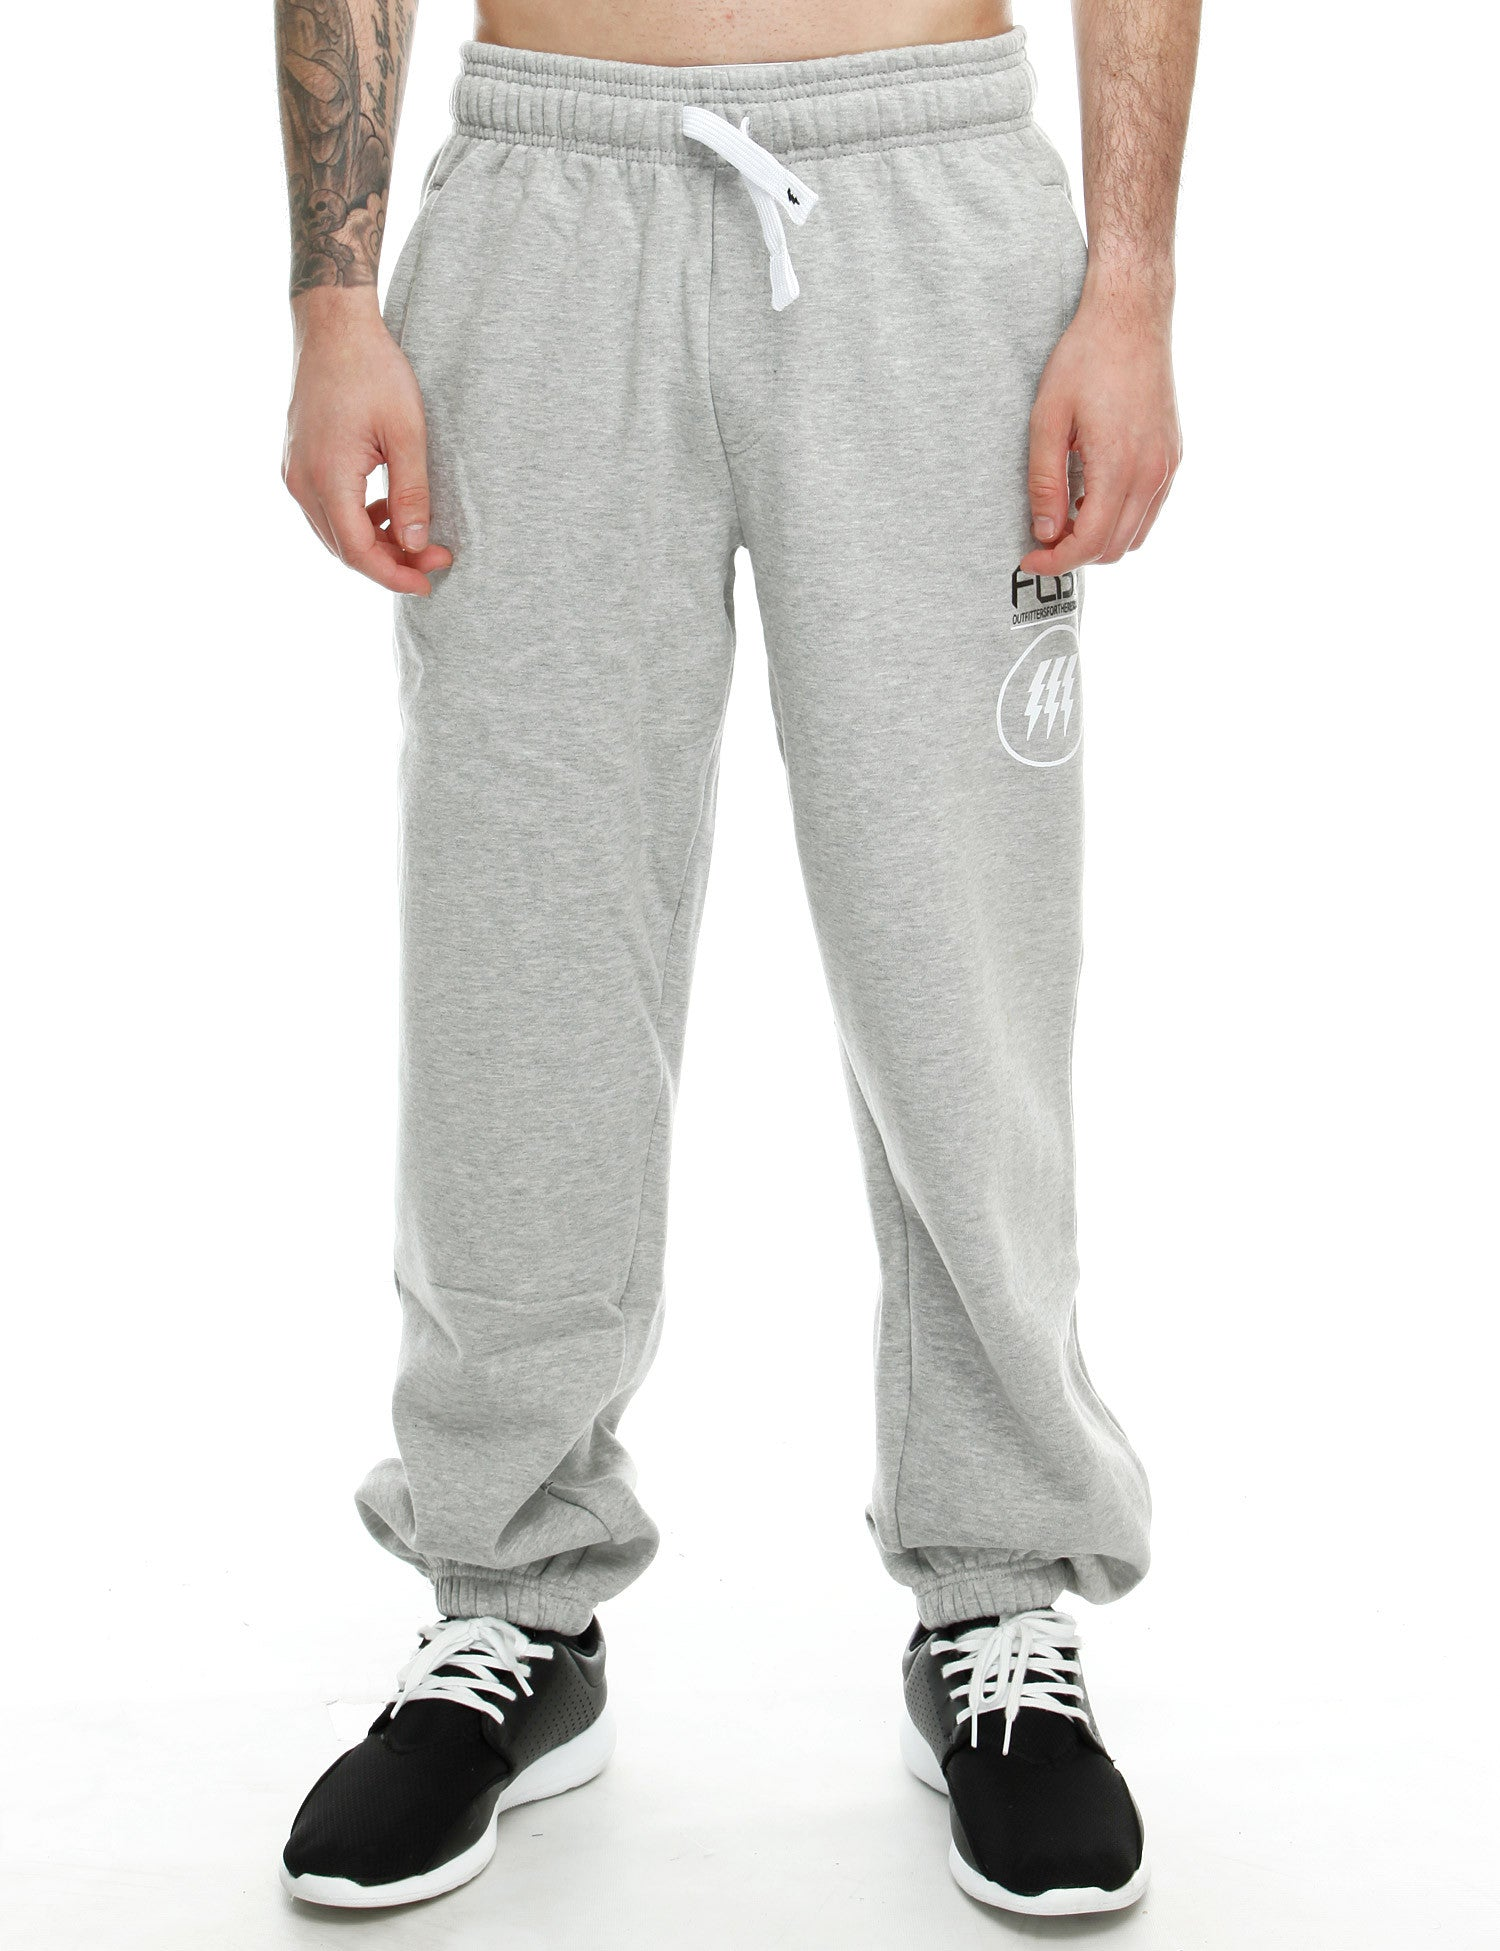 Fly 53 Canary Sweatpant FSK00319 Ath Grey